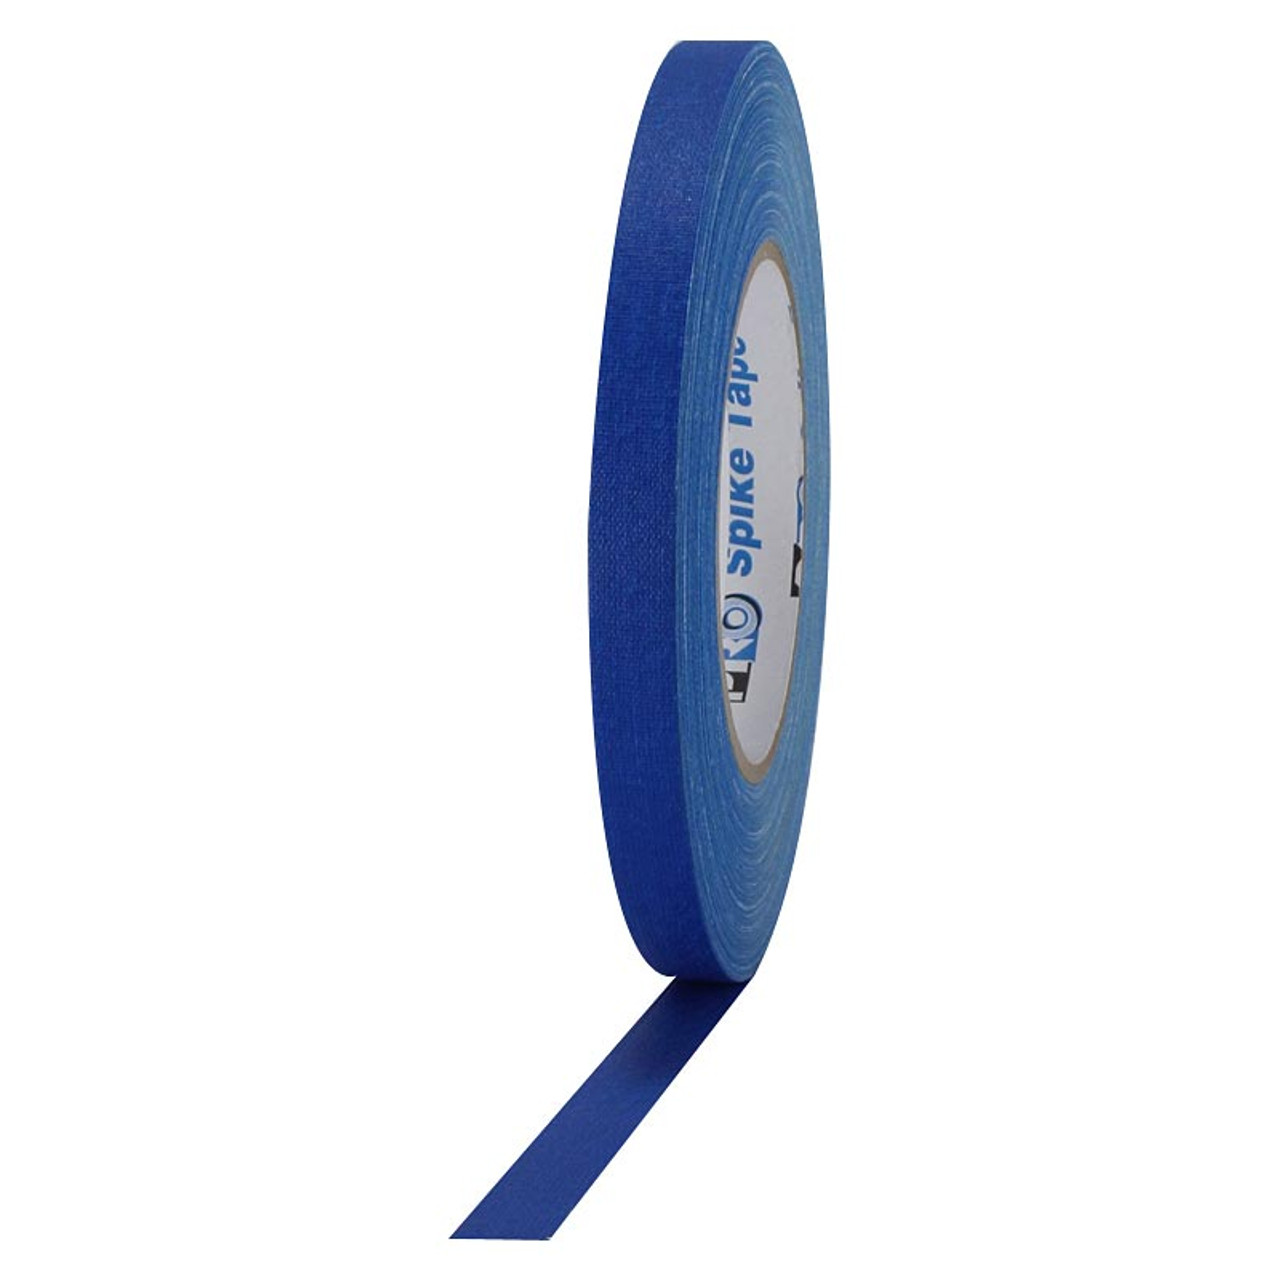 "Spike Tape - Electric Blue 1"" x 50 Yds"